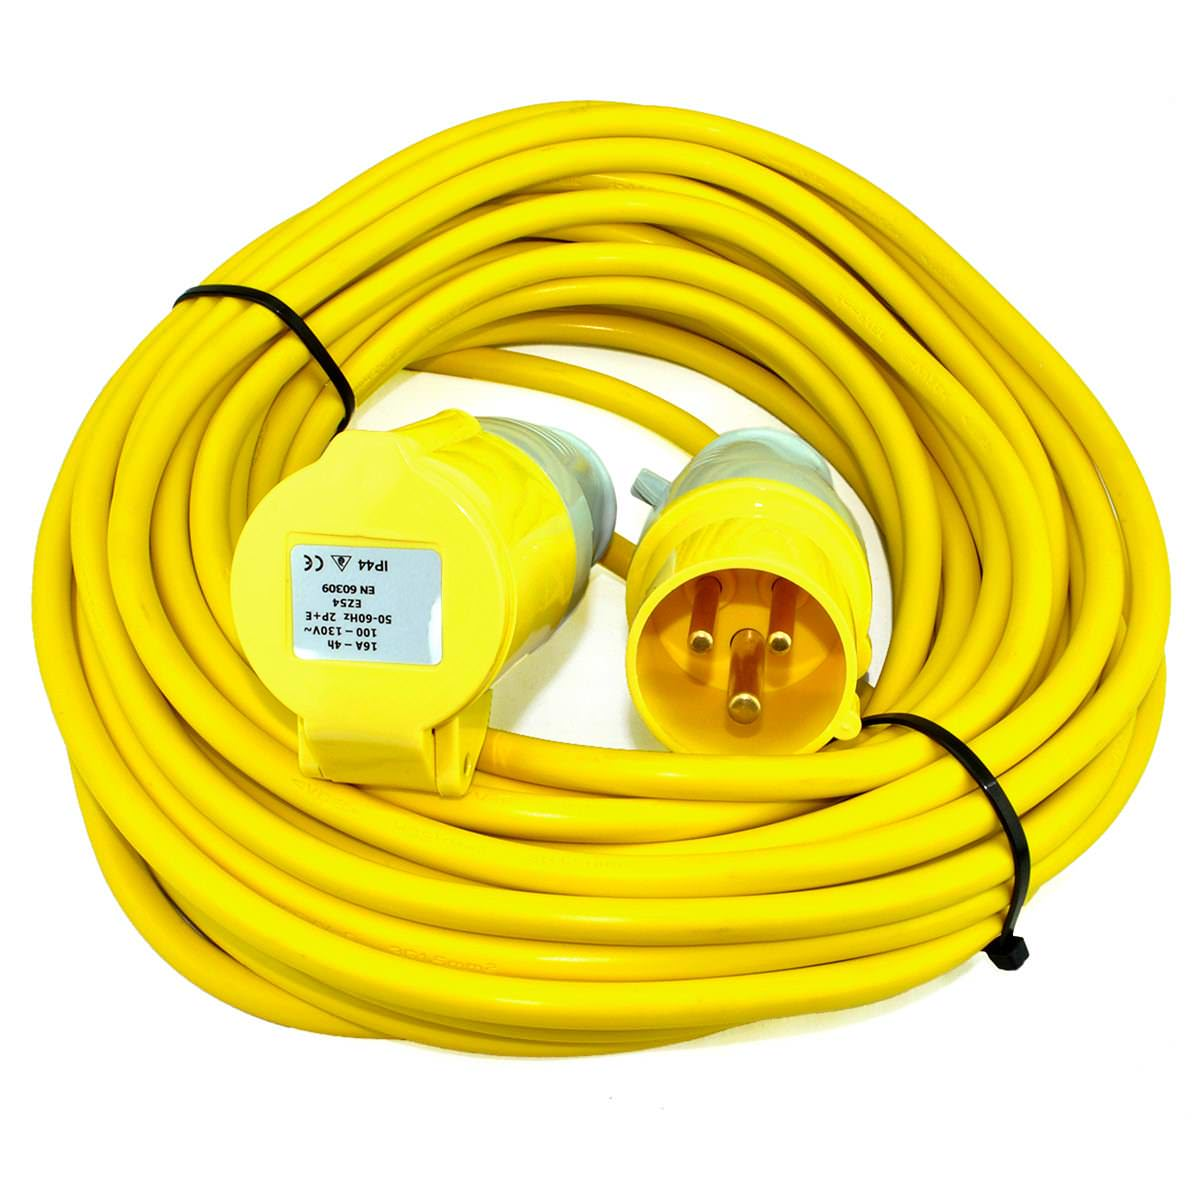 14m Extension Lead 110v